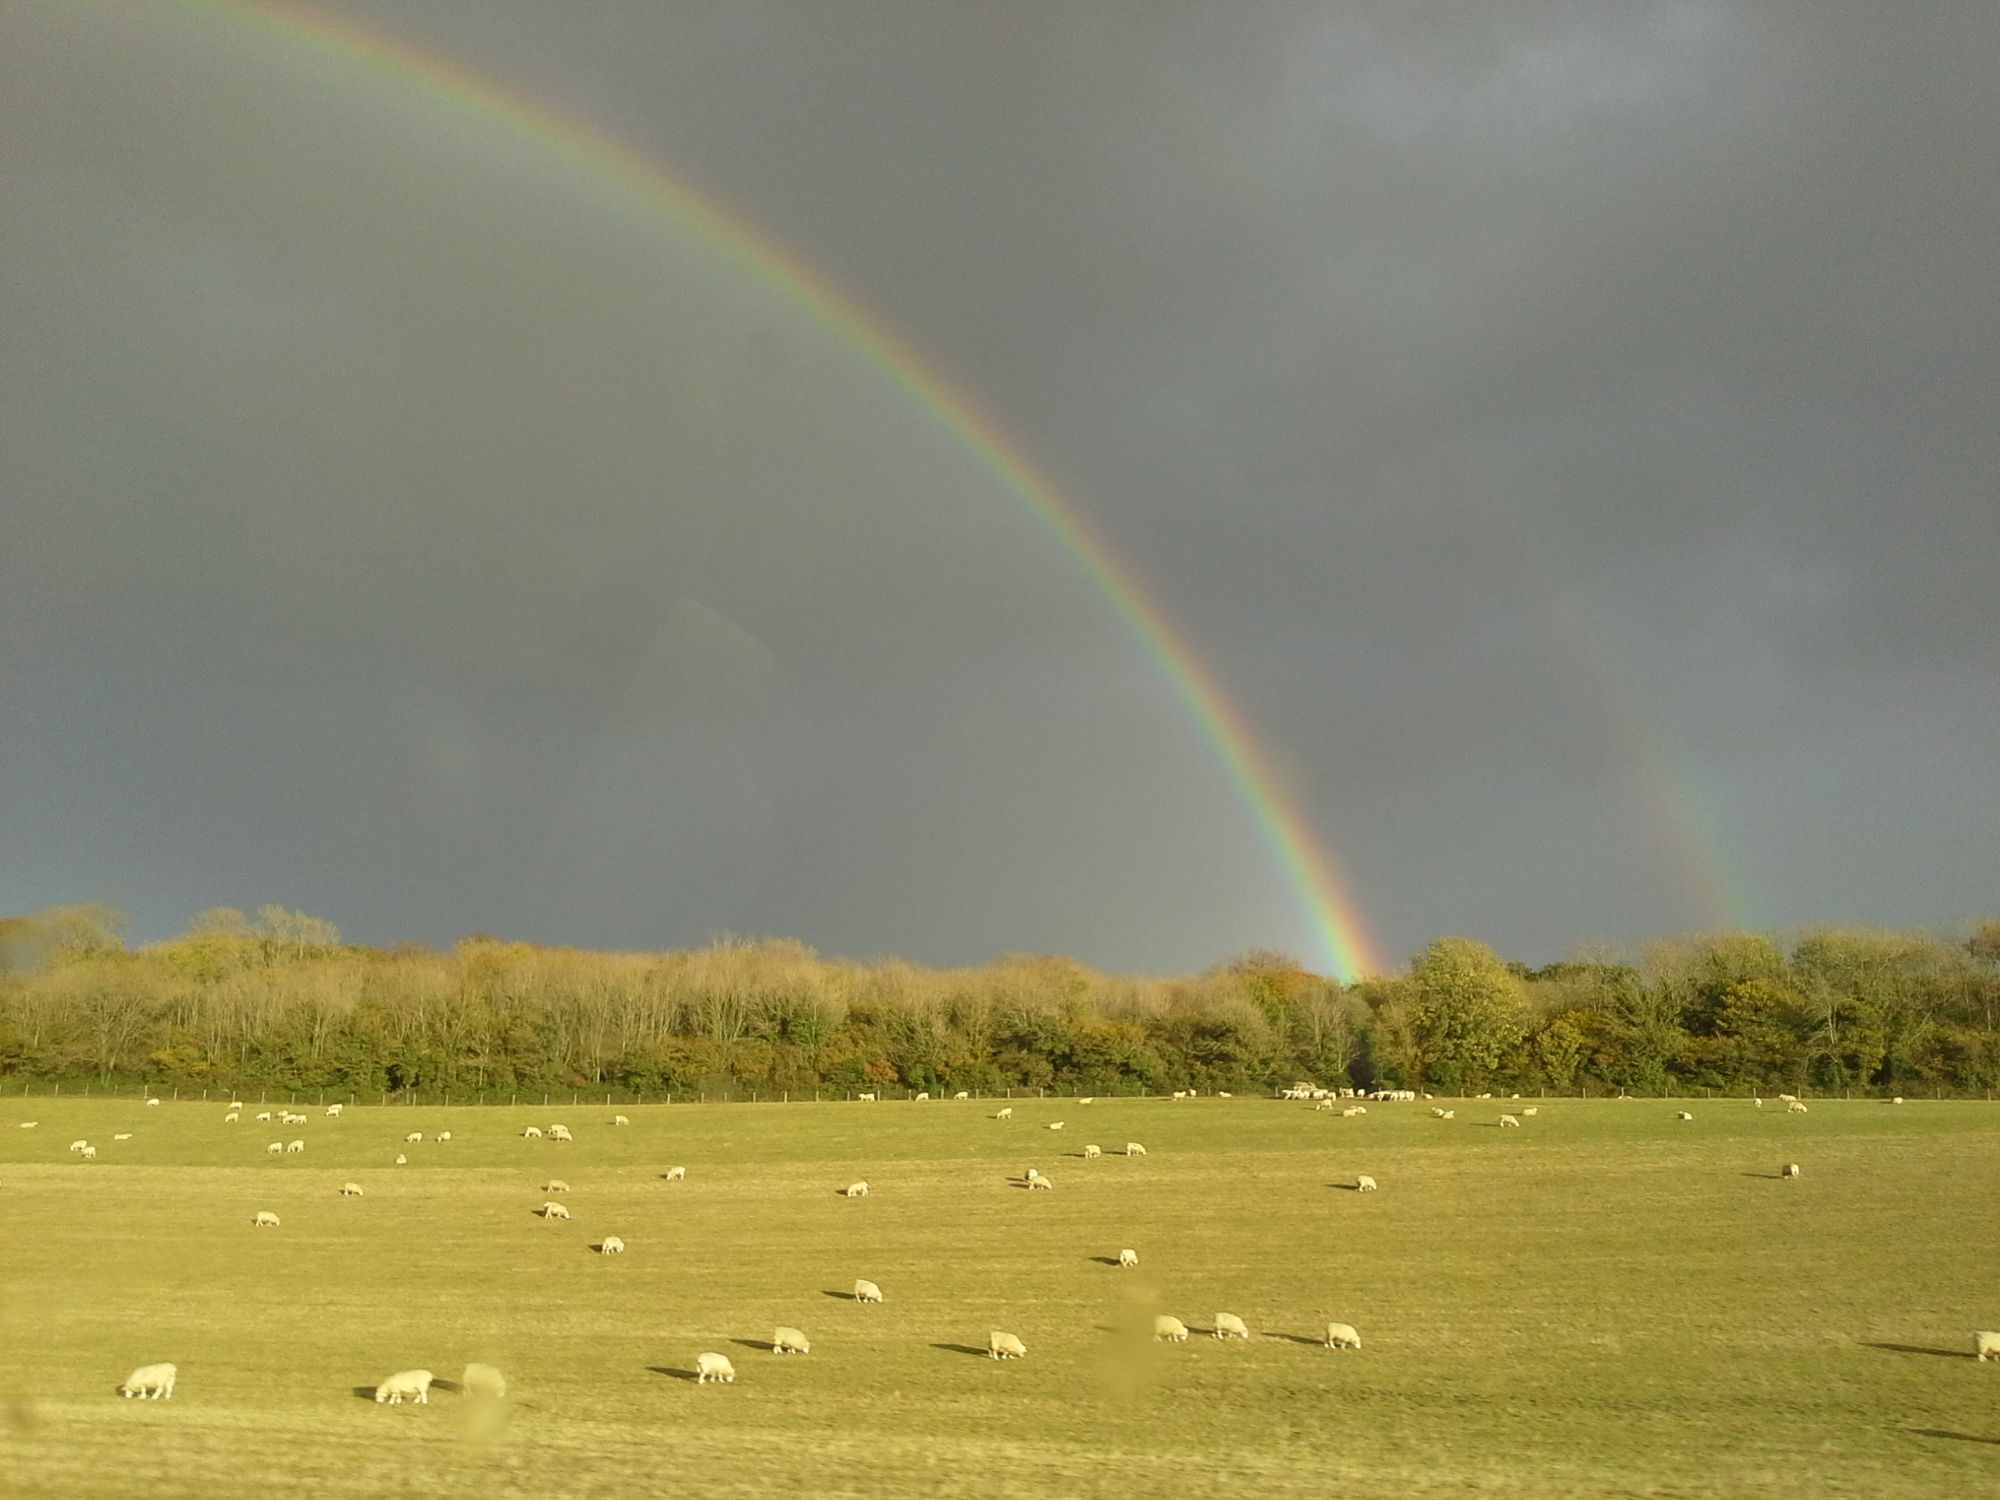 Sheep and Rainbows